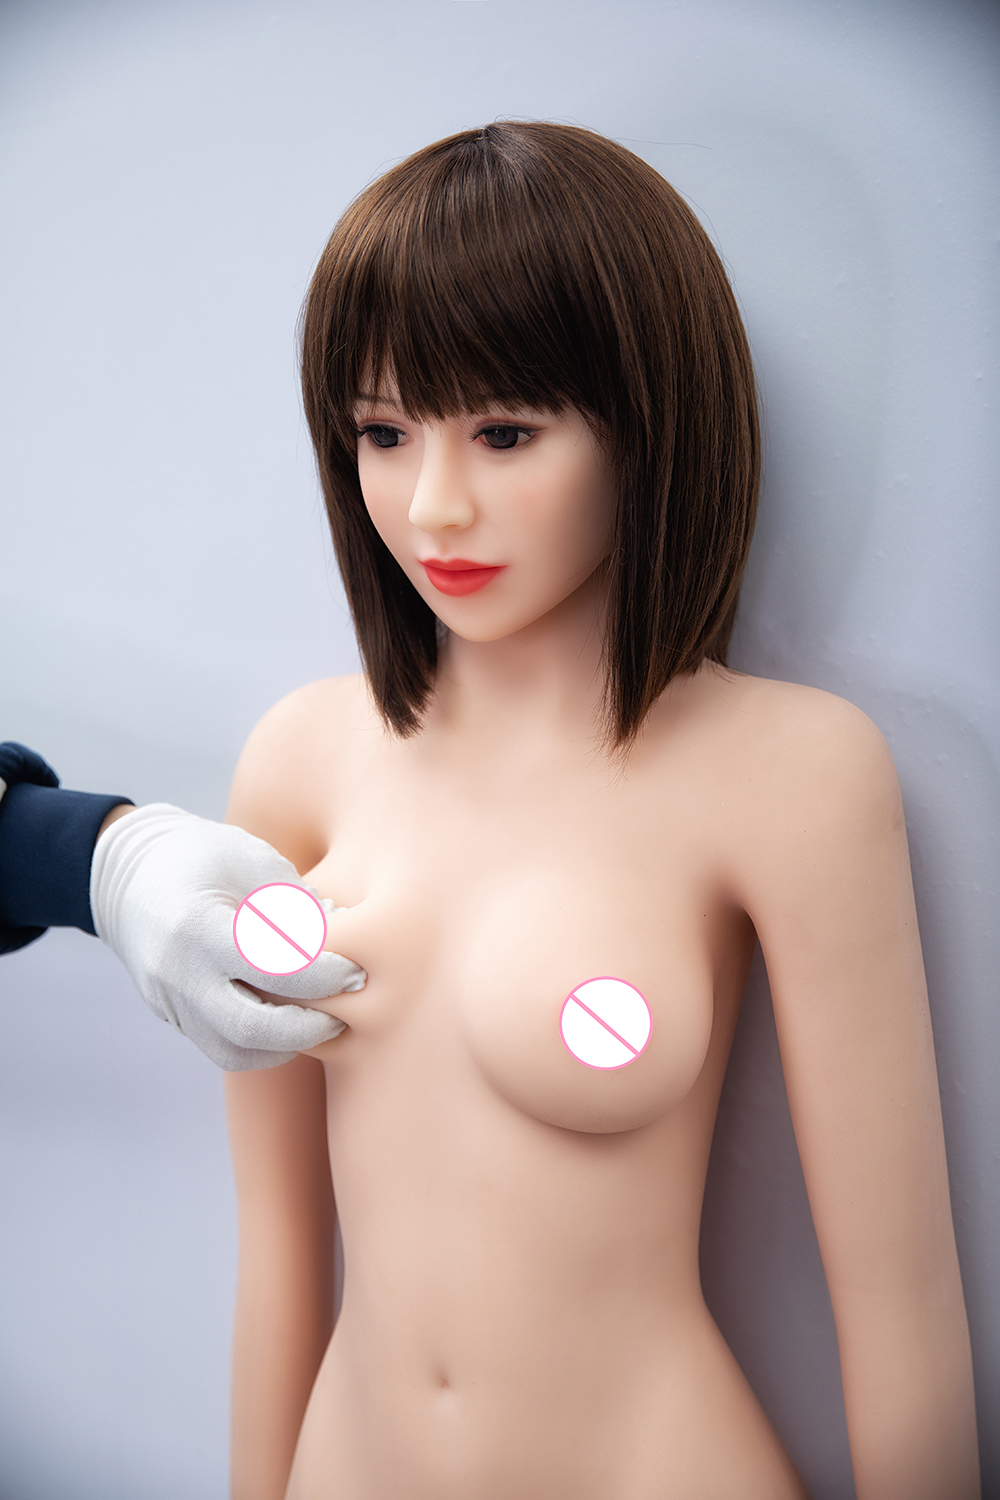 <font><b>100</b></font> <font><b>Sex</b></font> <font><b>Dolls</b></font> with <font><b>100</b></font>% Silicone TPE with Japanese Small Breast Sexy Vagina Adult Full Life Full Size Love <font><b>Doll</b></font> <font><b>Sex</b></font> Toys for Men image